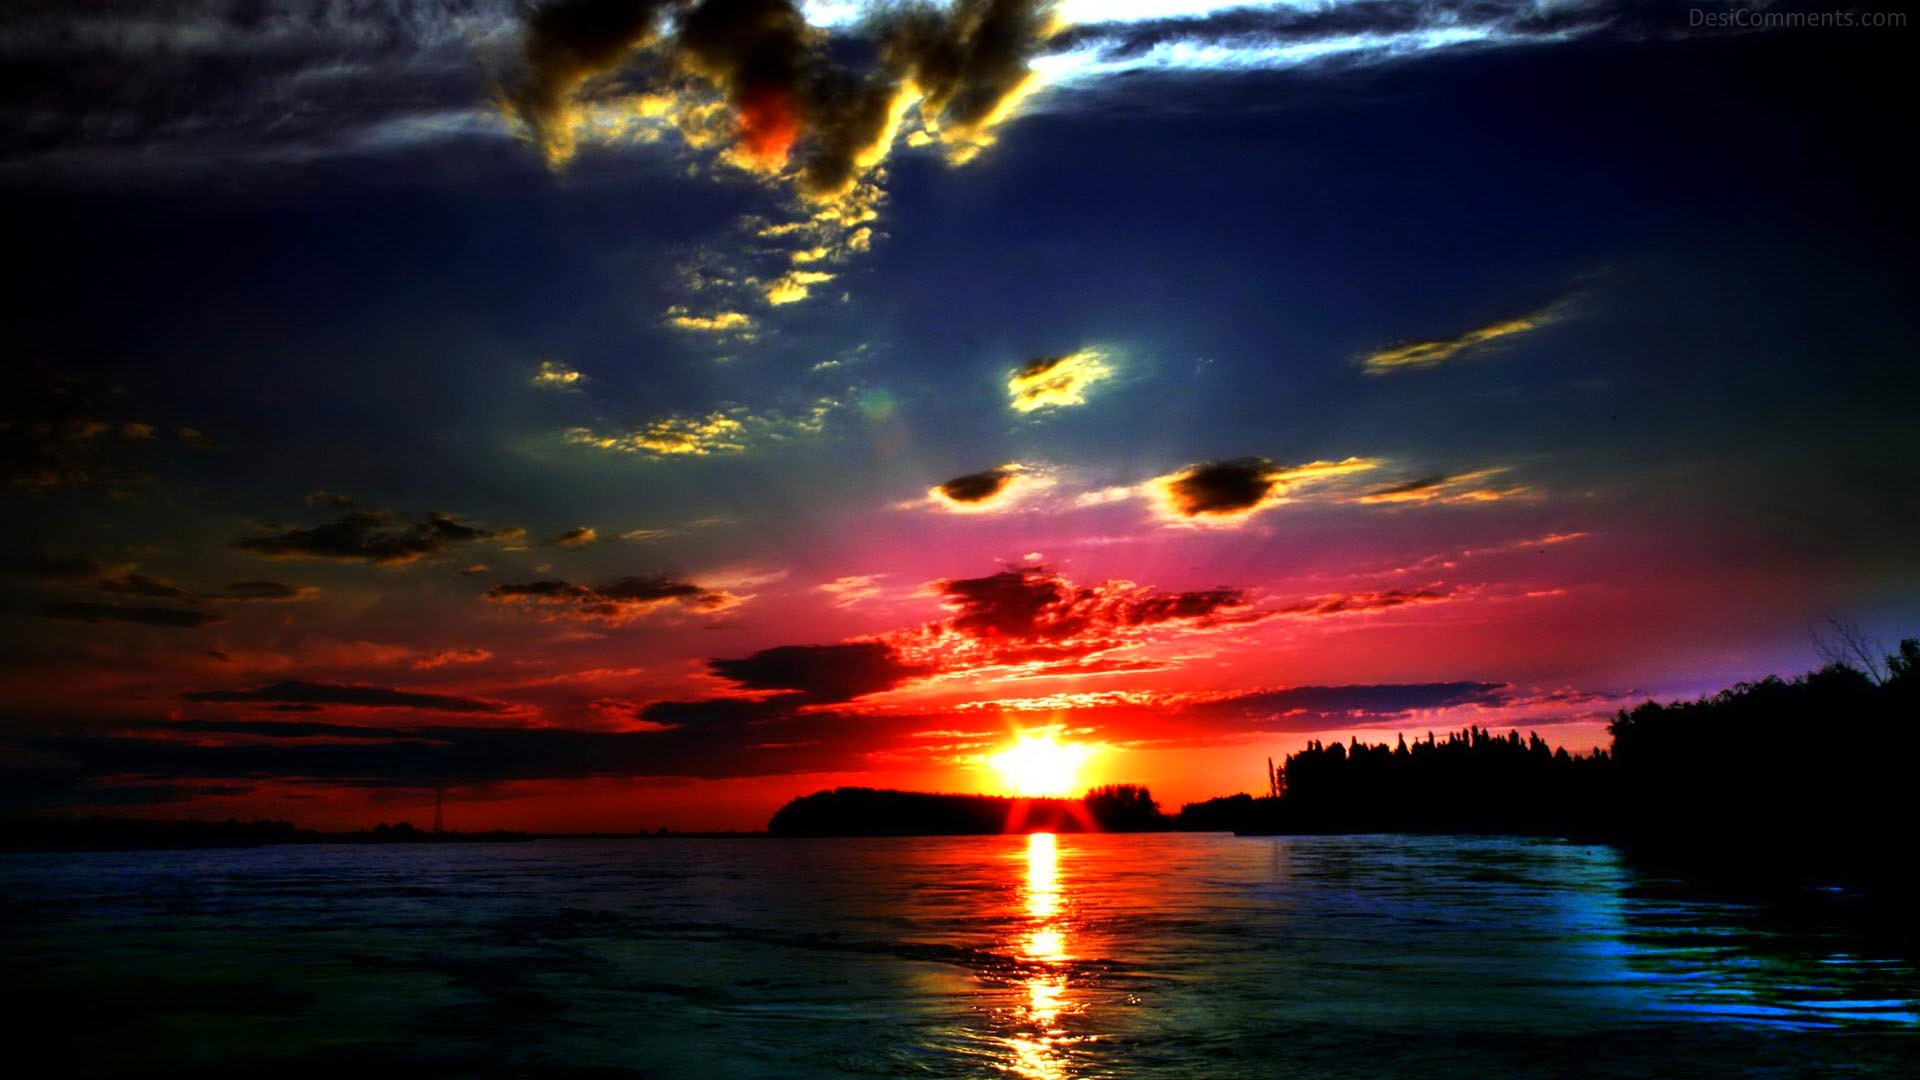 Sunset Wallpapers - Wallpapers